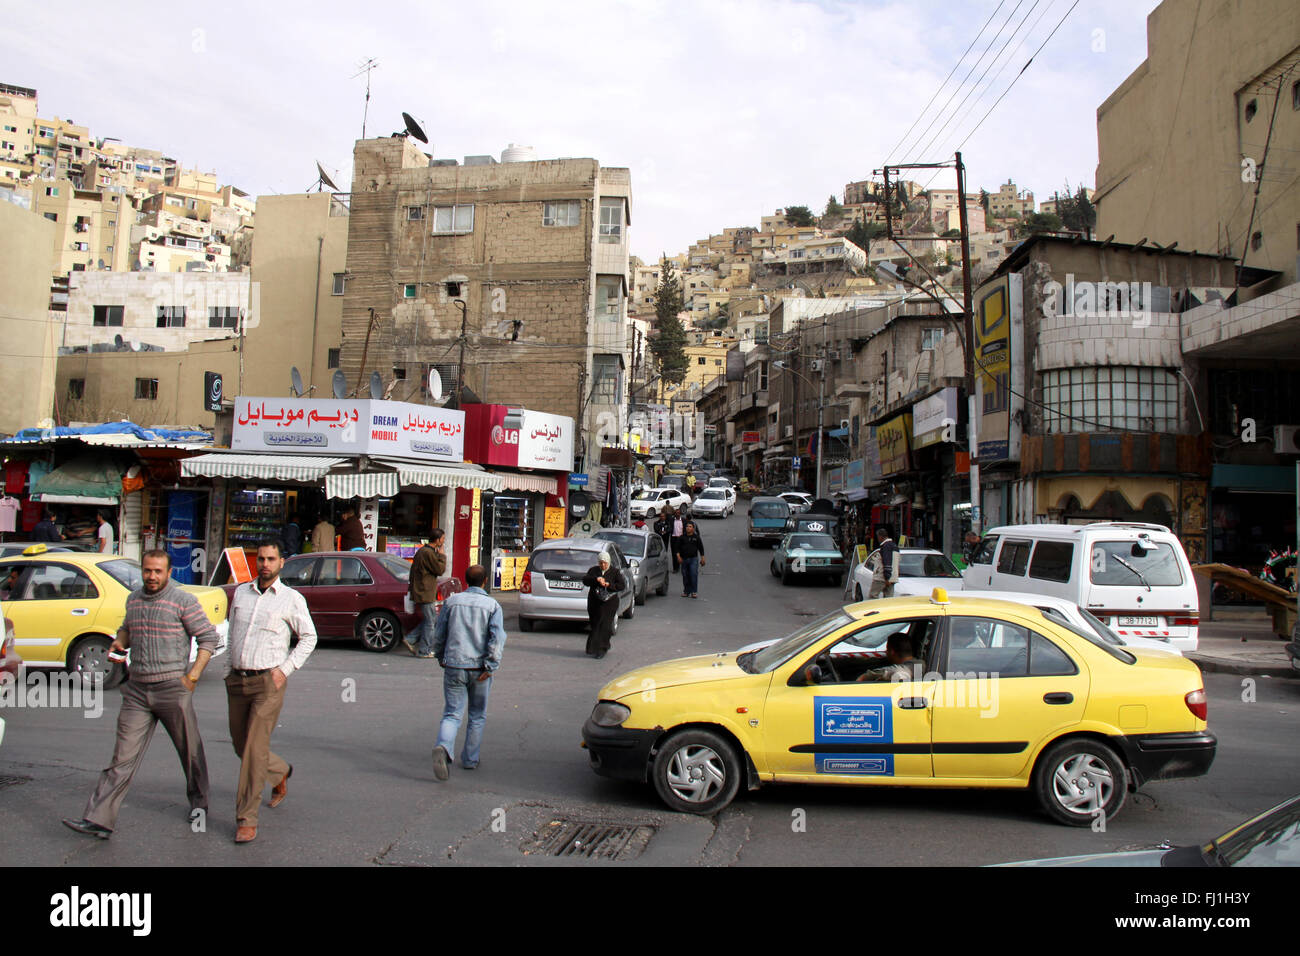 Rues de Amman, Jordanie Photo Stock